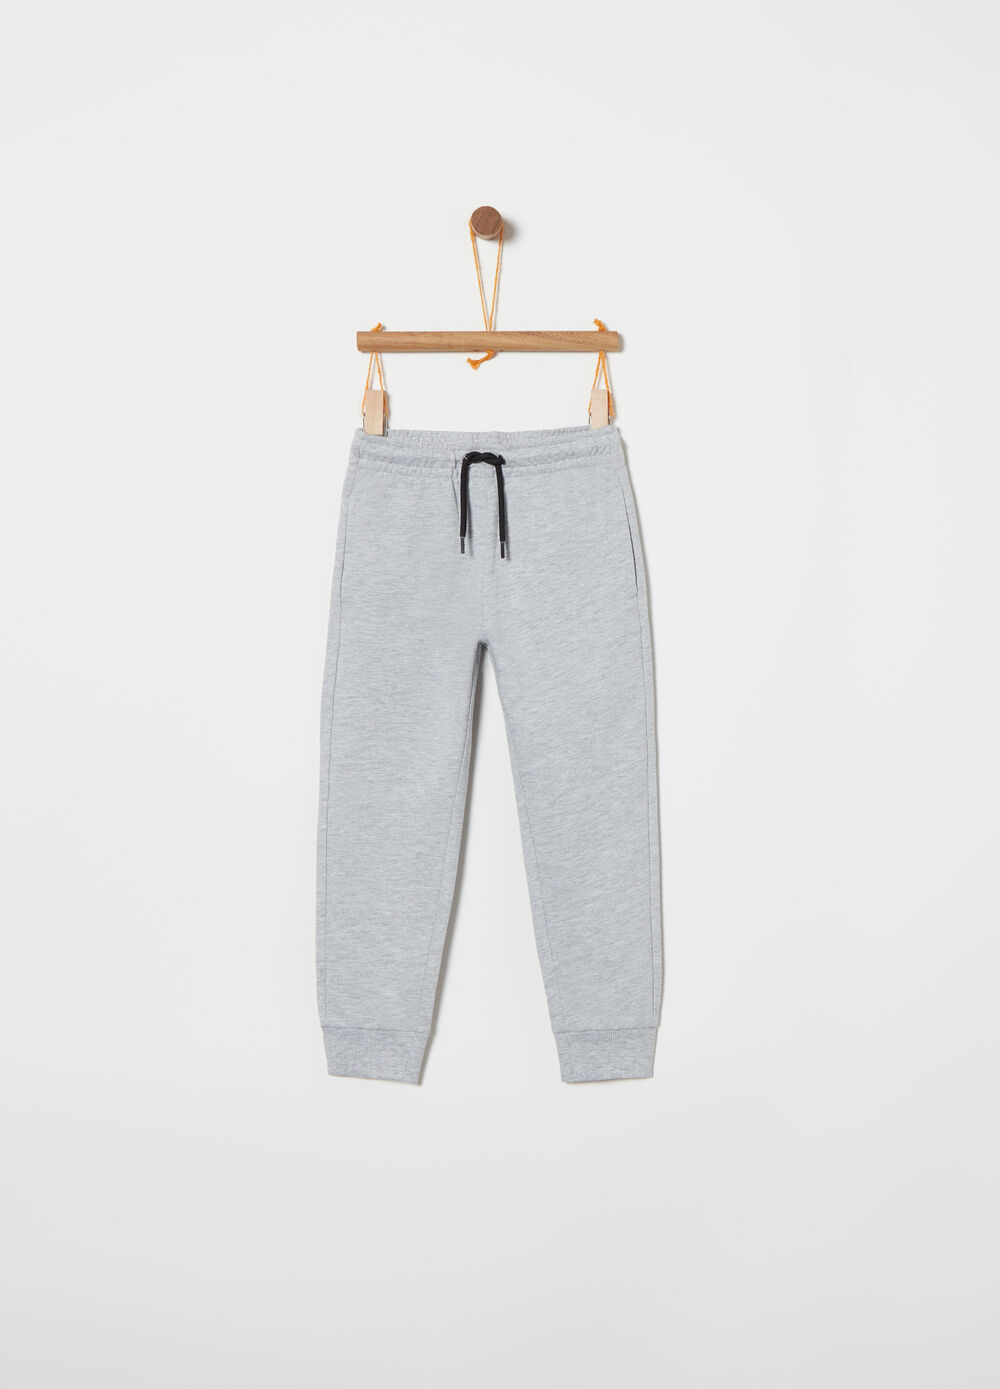 Lightweight fleece trousers with functional pockets